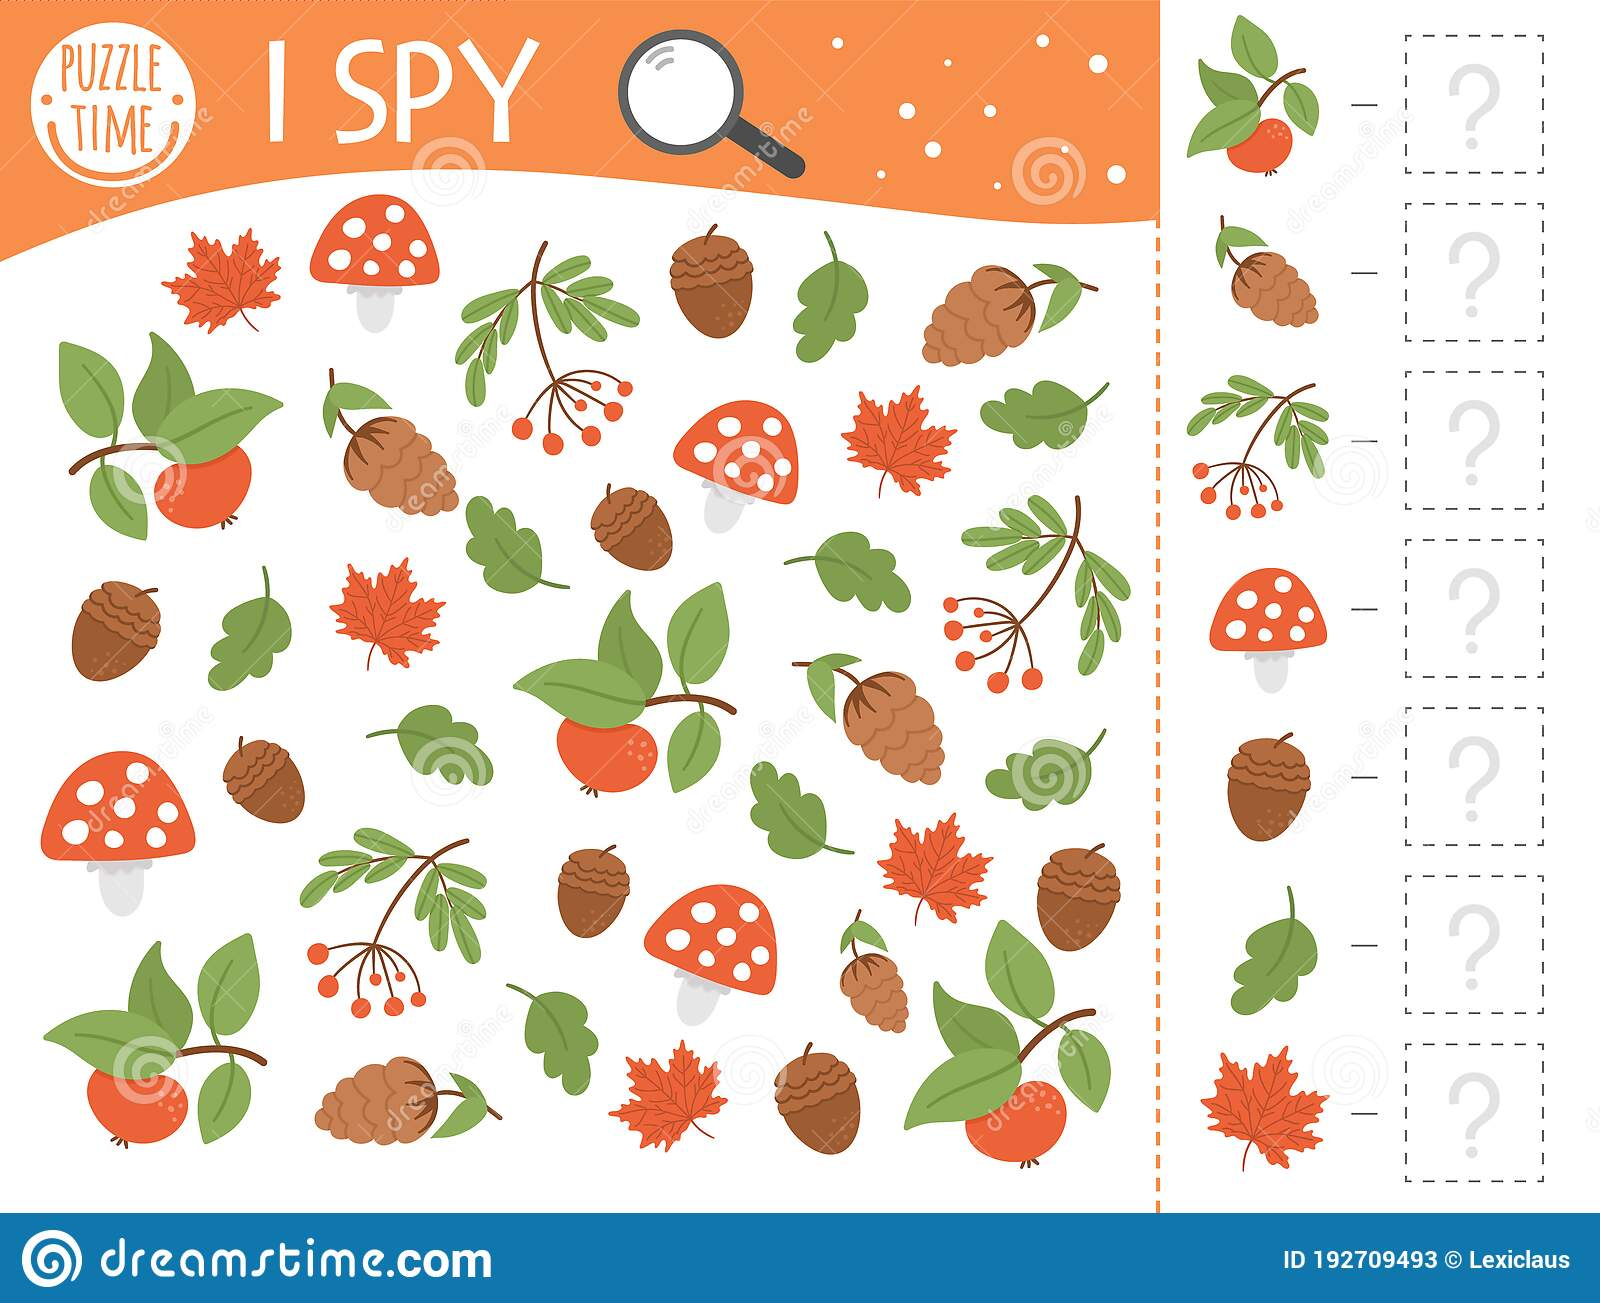 Autumn I Spy Game For Kids Searching And Counting